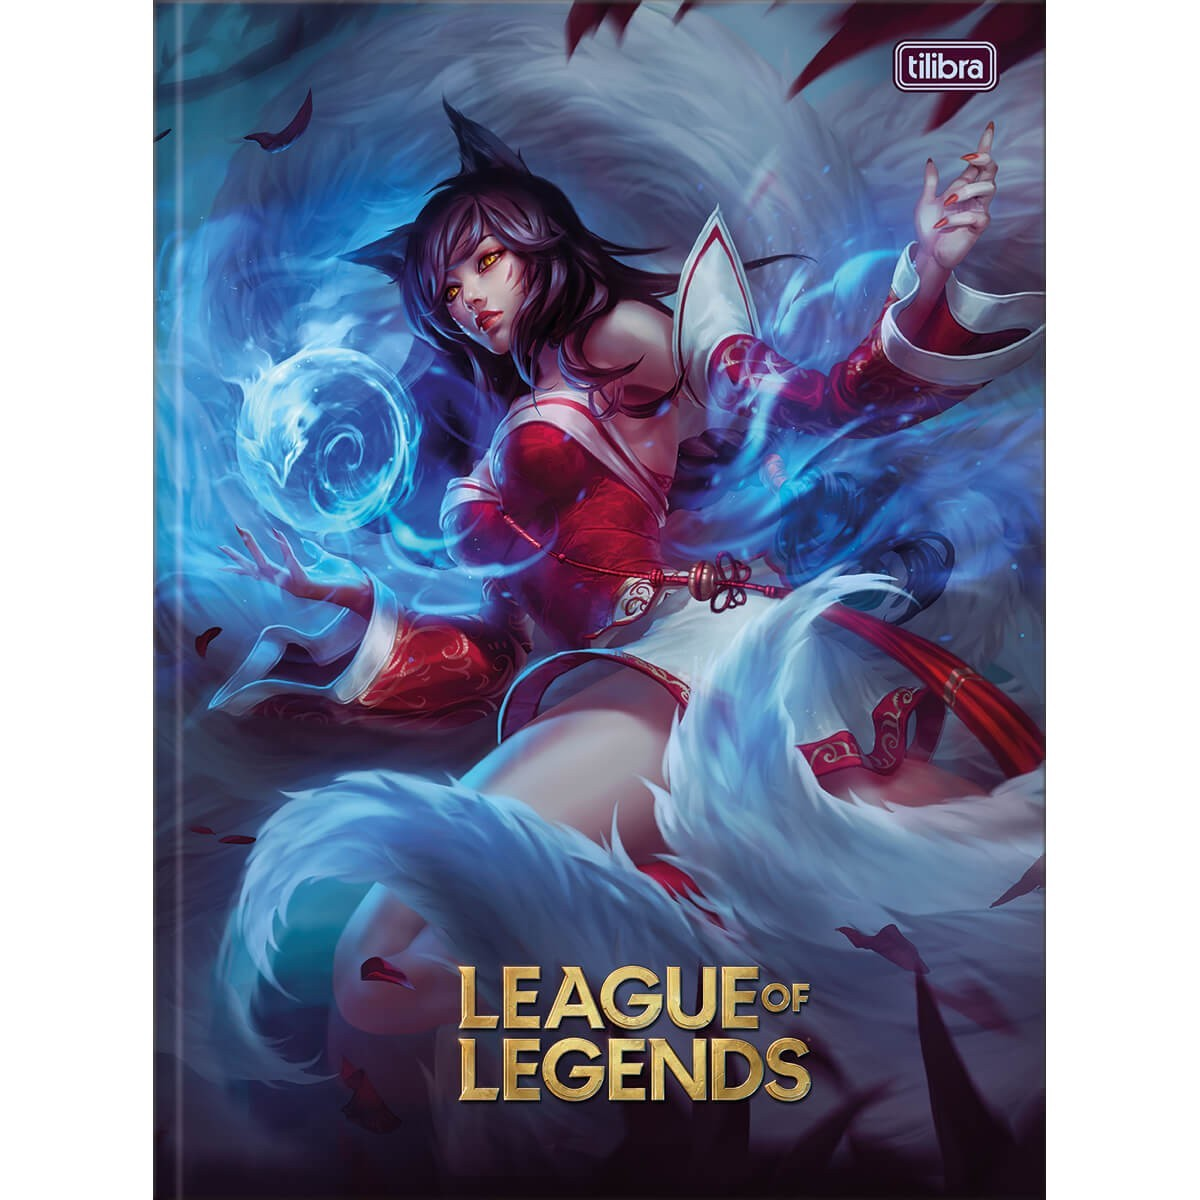 Caderno Brochura Capa Dura Universitário League of Legends Ahri 80 Folhas